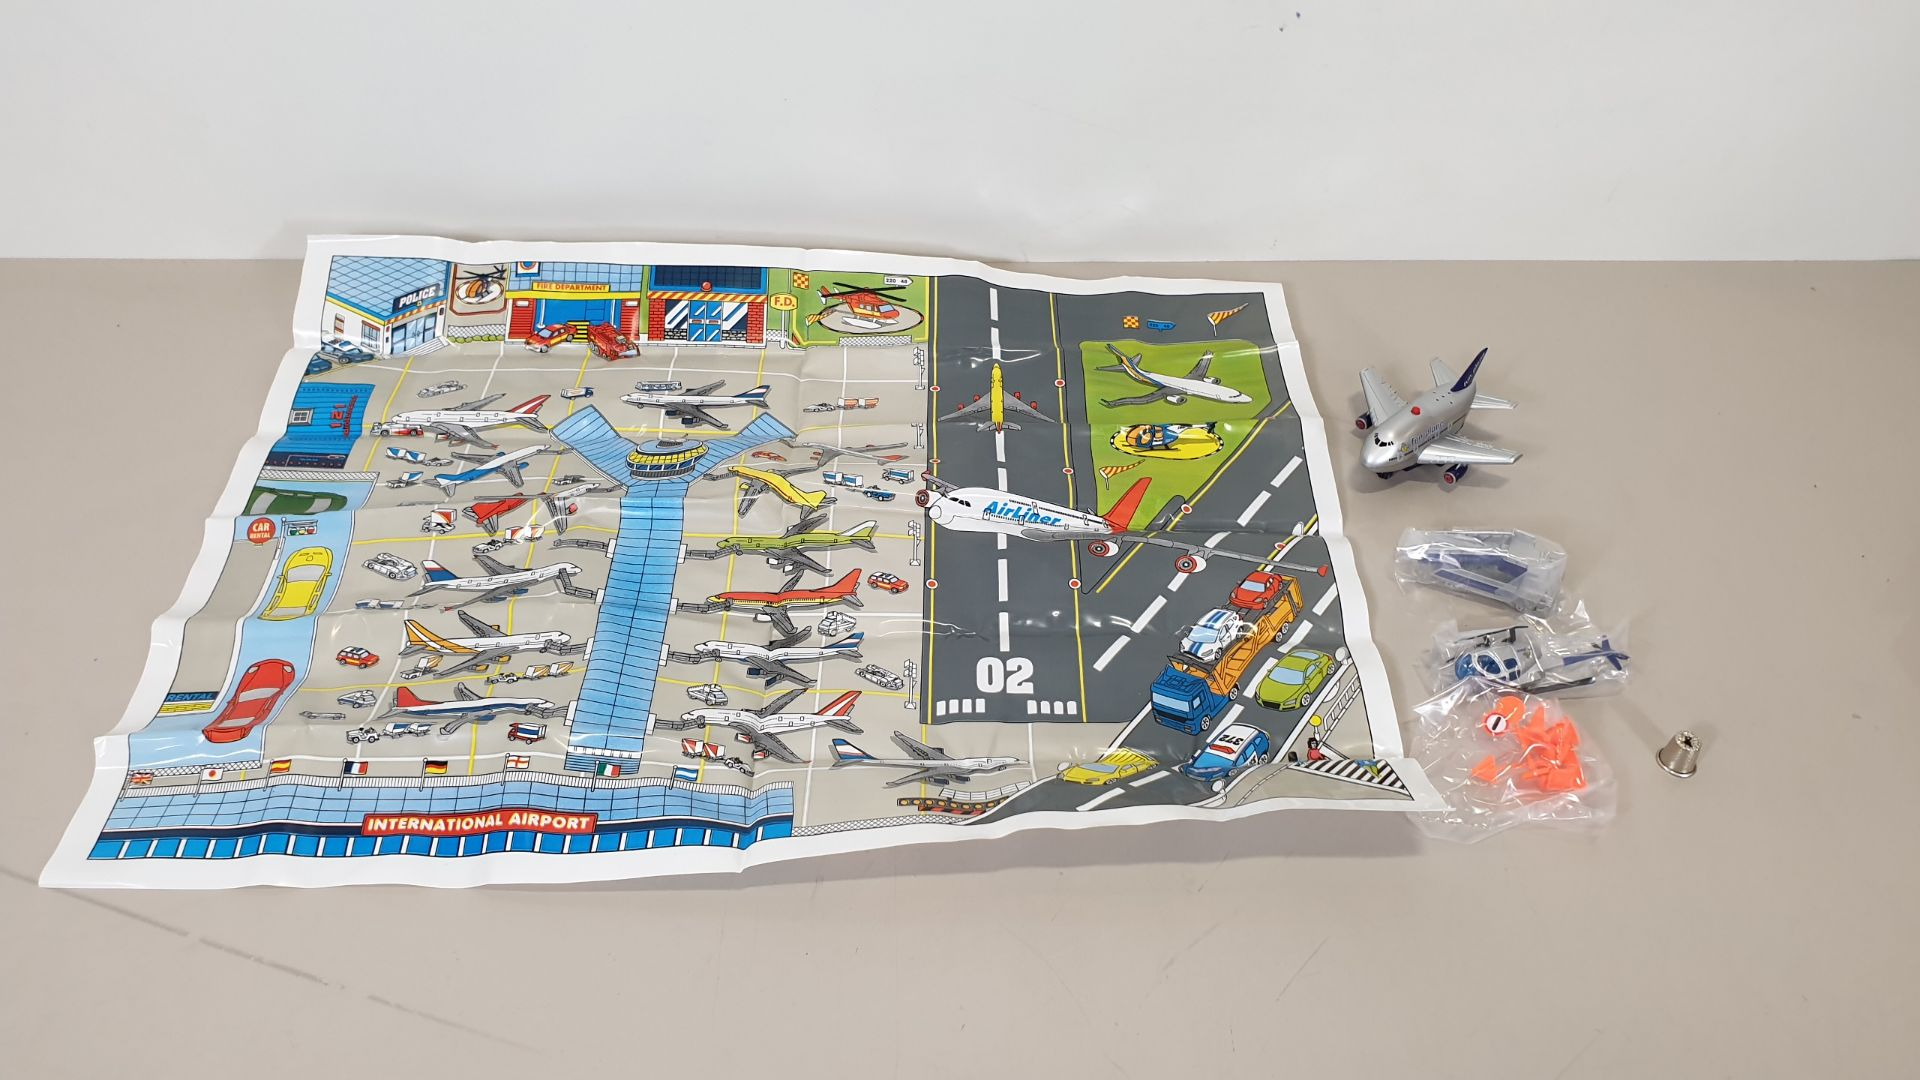 Lot 55 - 96 X BRAND NEW FUN PLANE AIRPORT SETS - INCLUDES 1 X FUN PLANE (BATTERIES INCLUDED), 1 ROAD MAP, 1